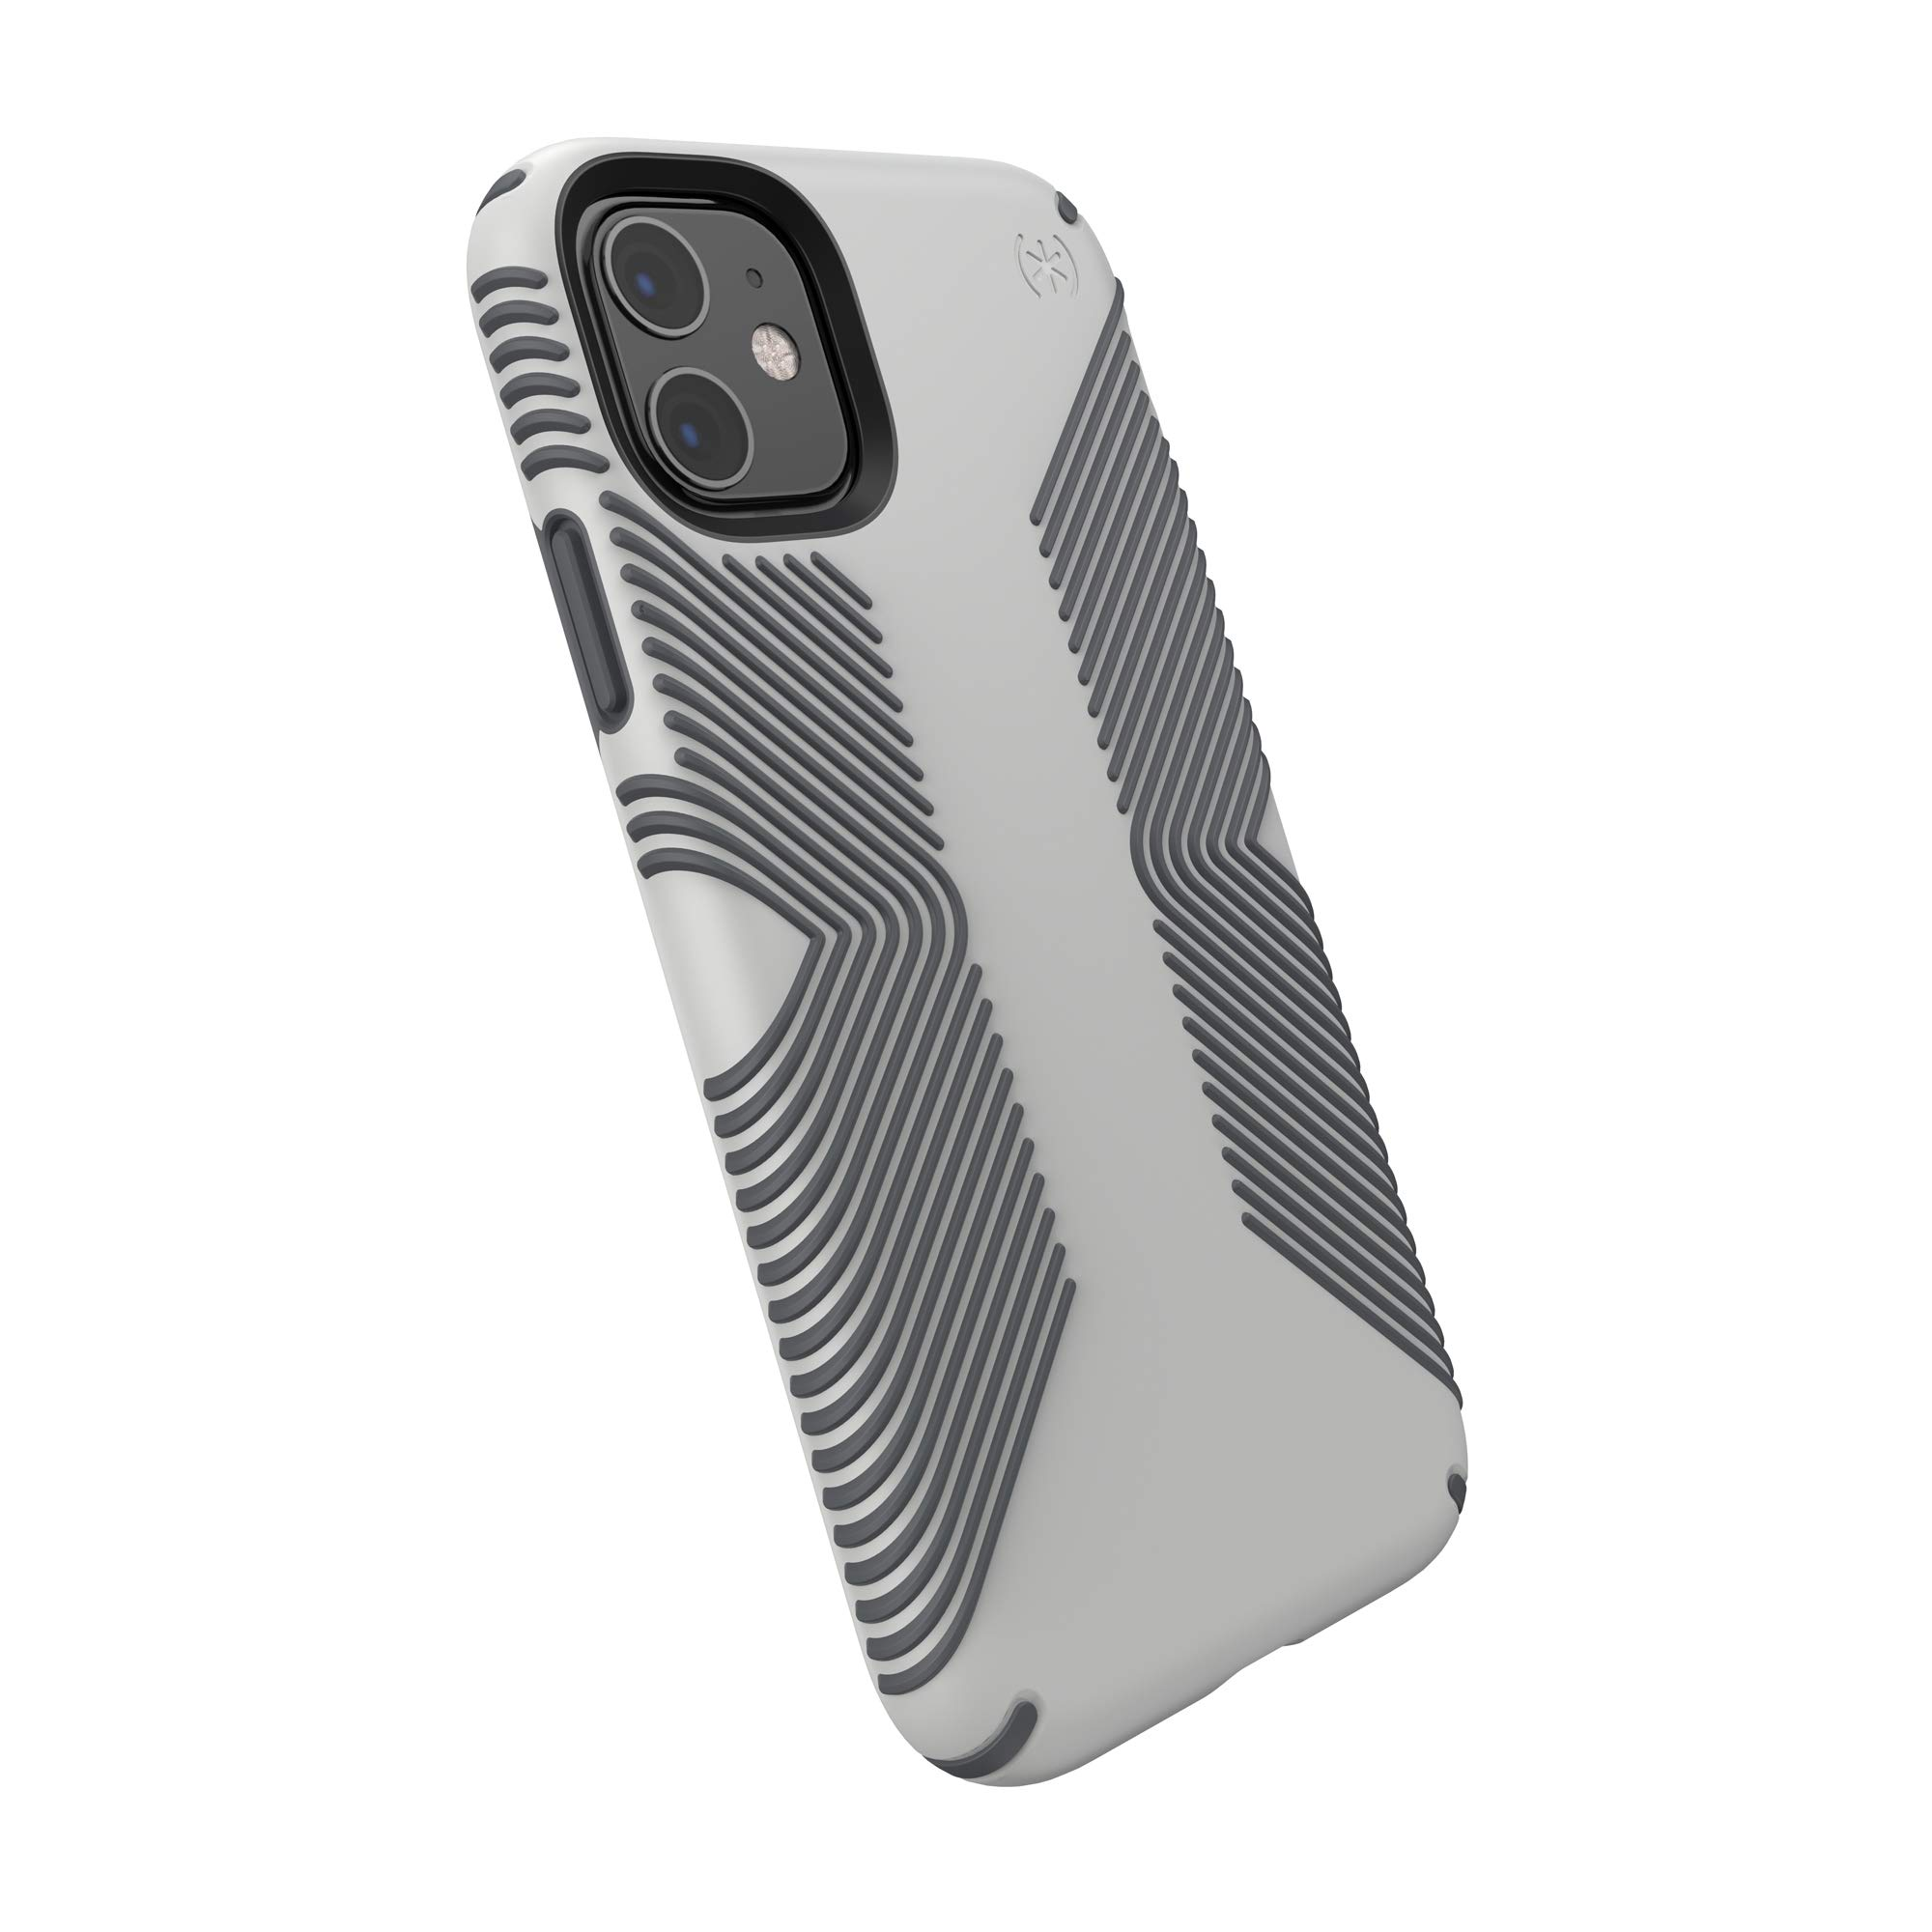 Speck Products 129909-8396 Presidio Grip iPhone 11 Case, Marble Grey/Anthracite Grey